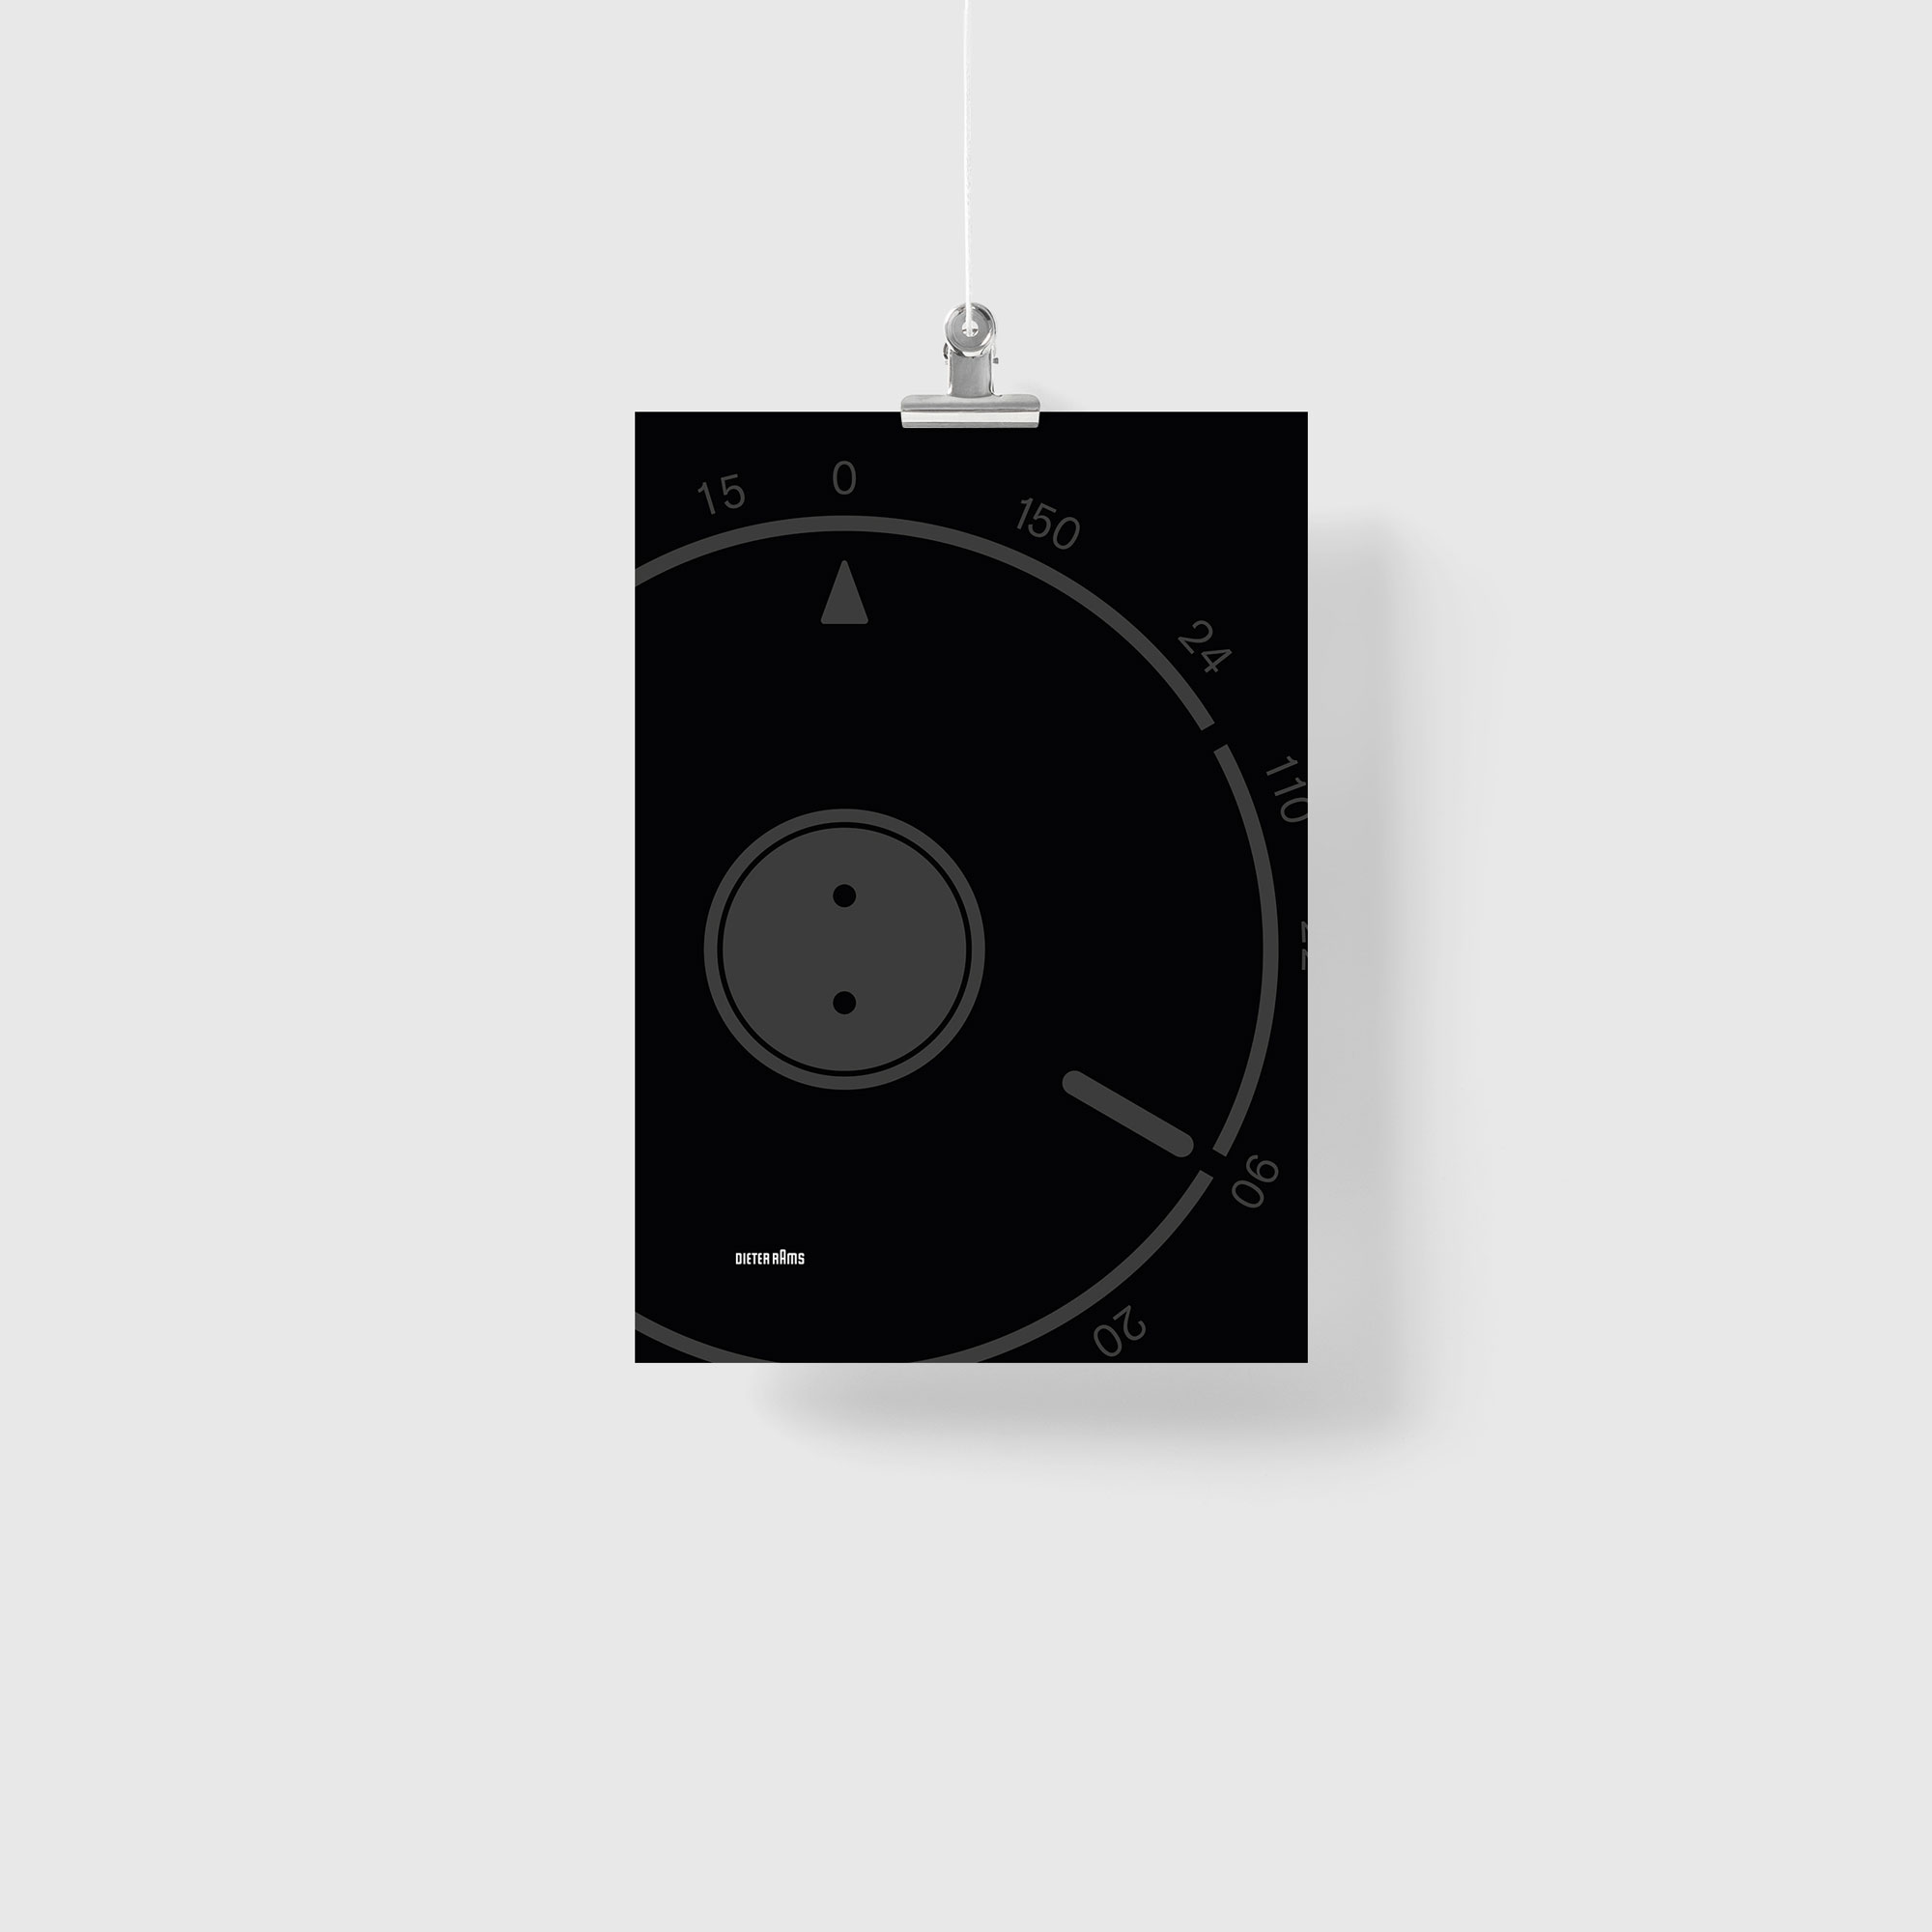 Braun T3 transistor radio by Dieter Rams Illustration Poster Giclée Print